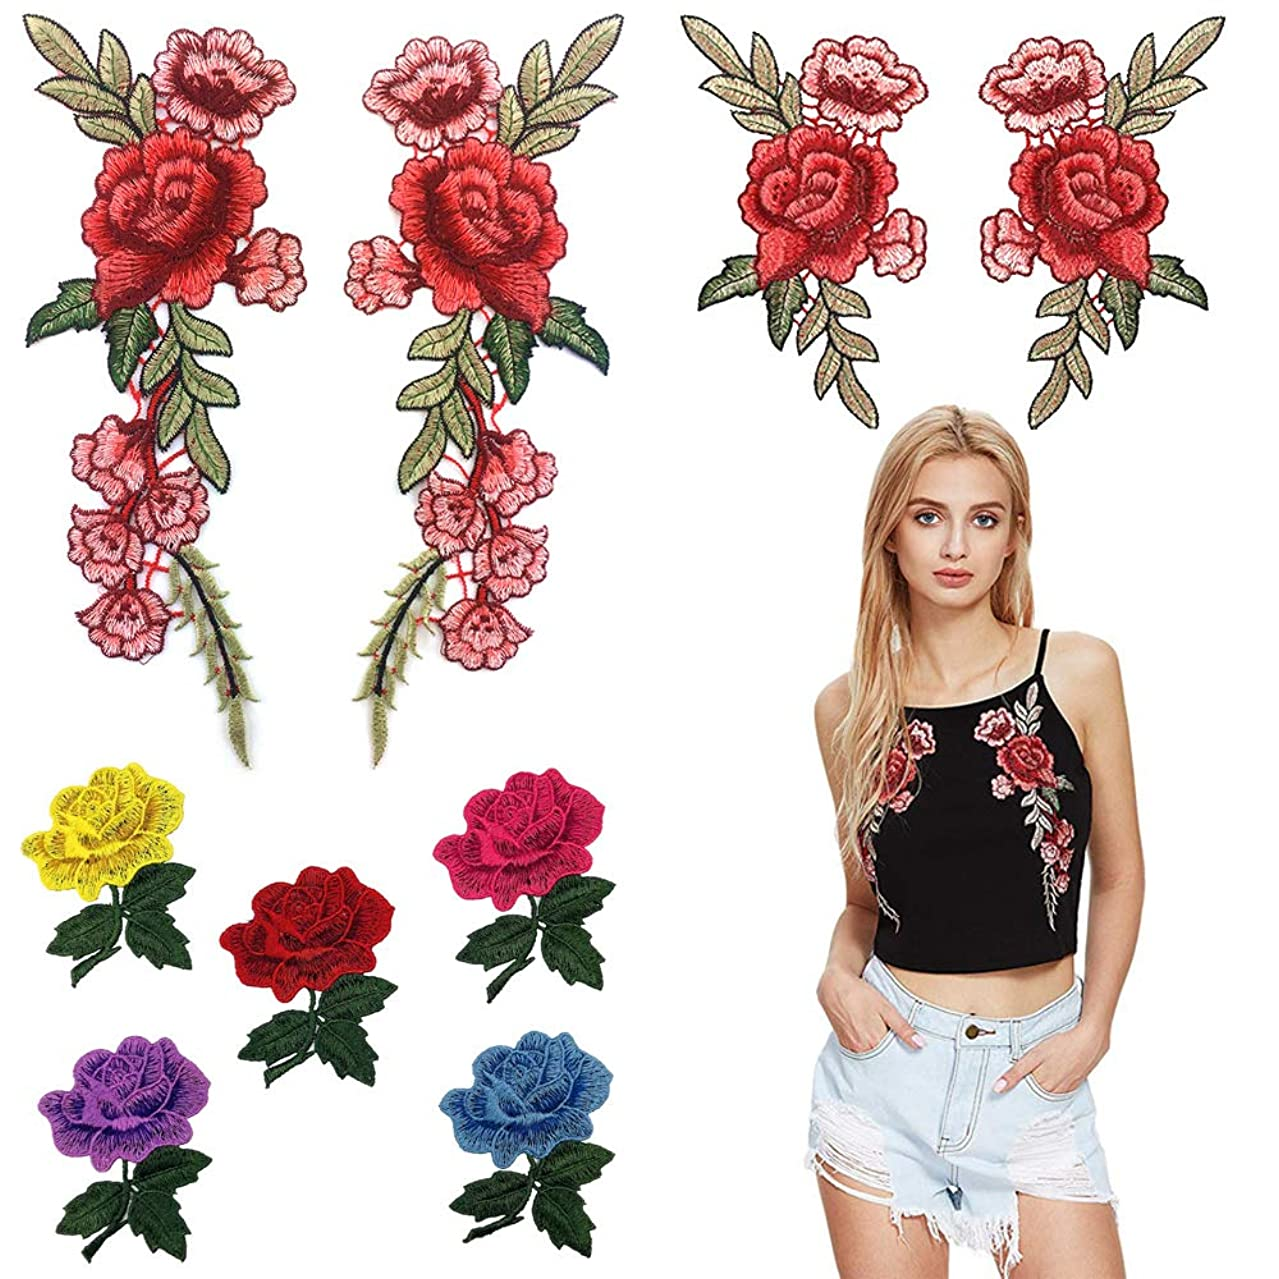 3D Lace Applique Rose Flowers Embroidered Sew on Patches for DIY Jeans, Jackets, Dress, Clothing, Bags (9 Pieces)